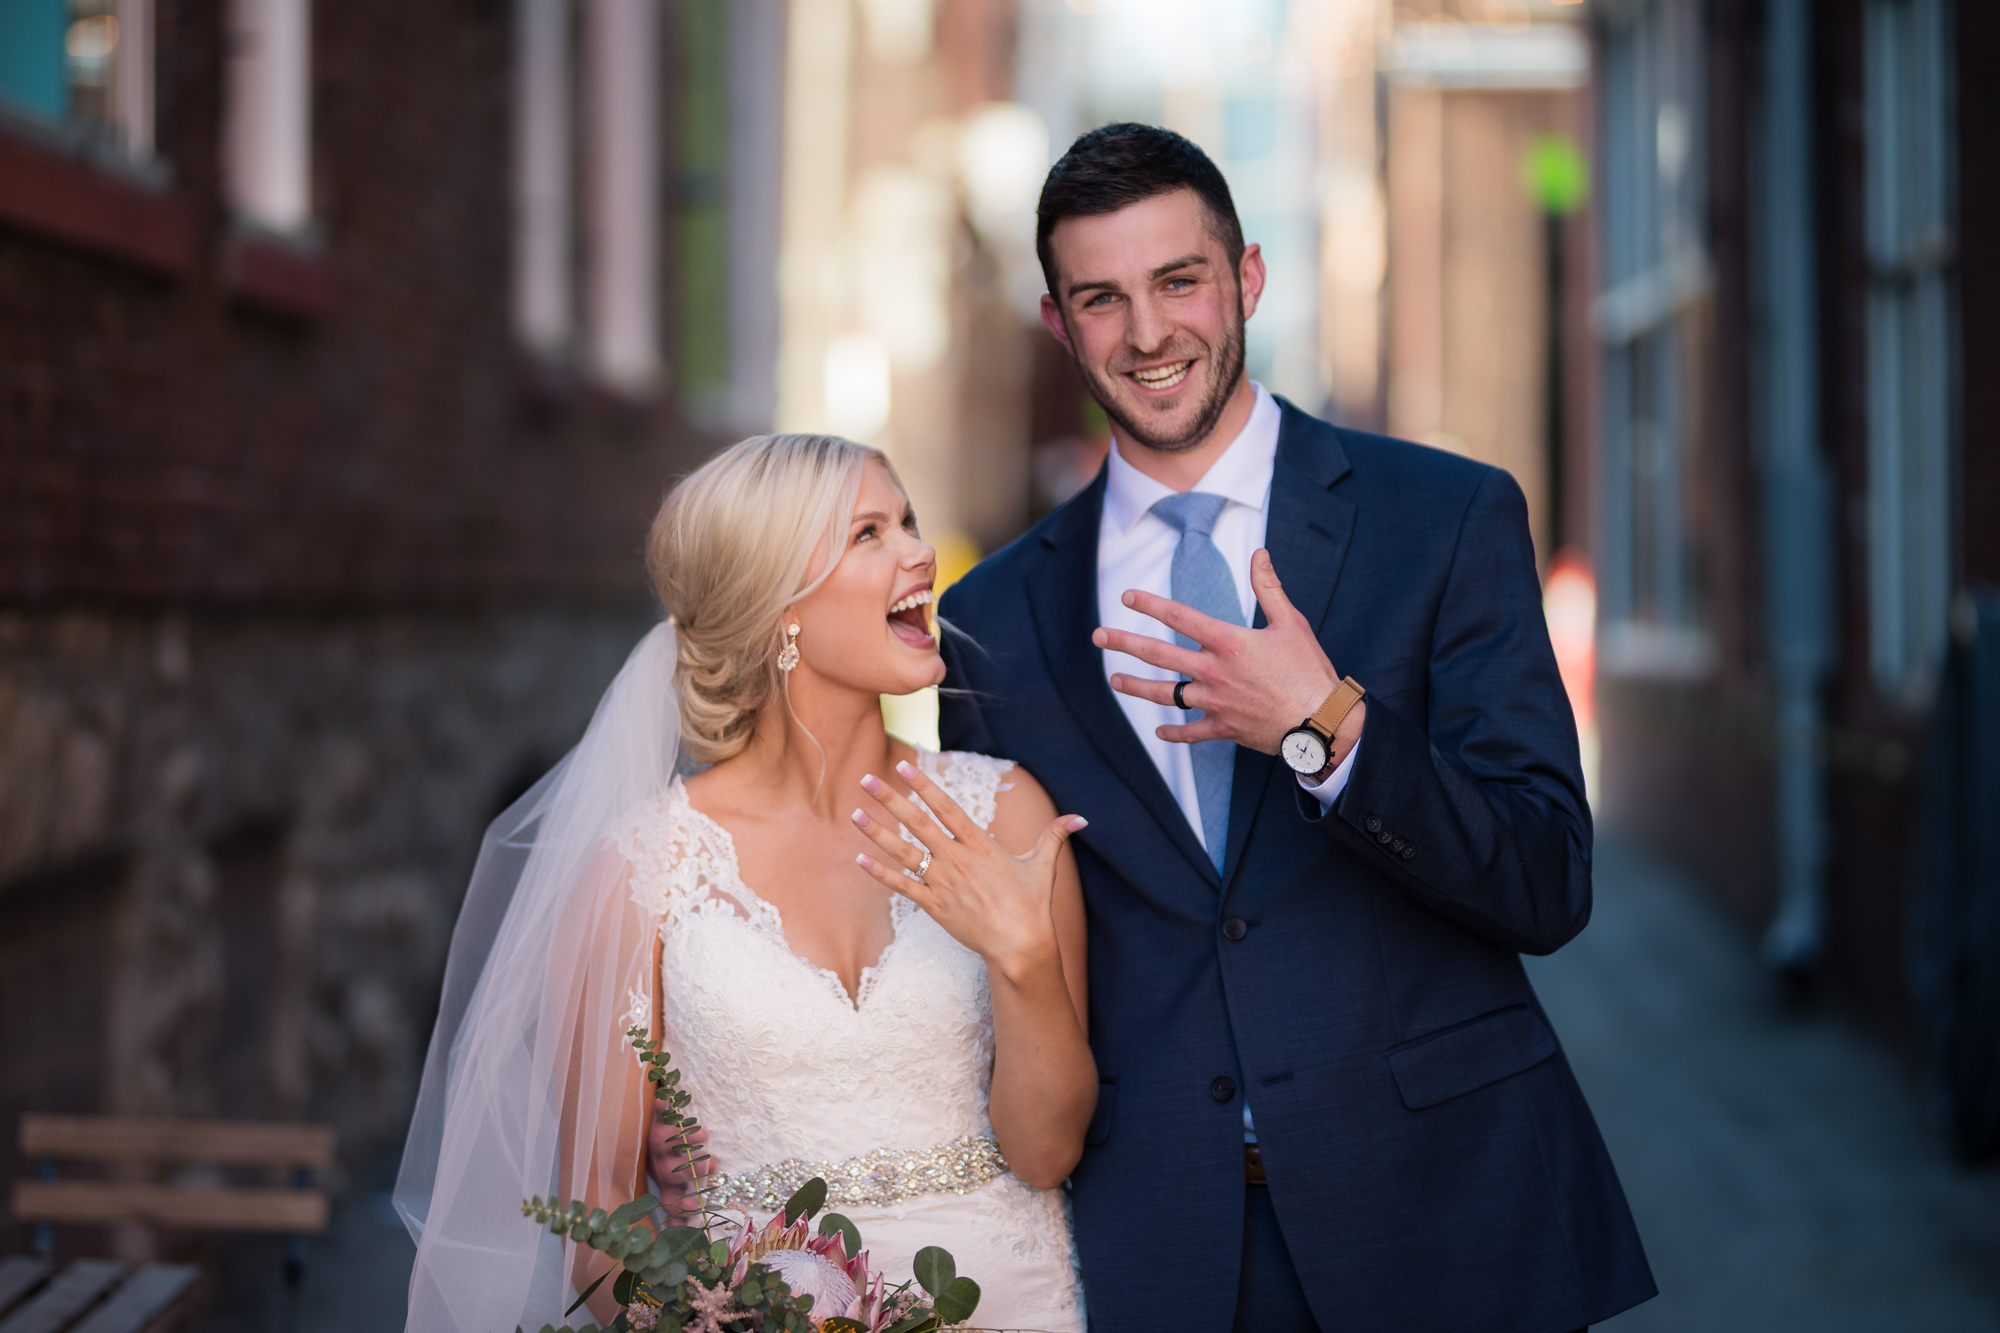 Wedding Photographer In Kansas City.jpg